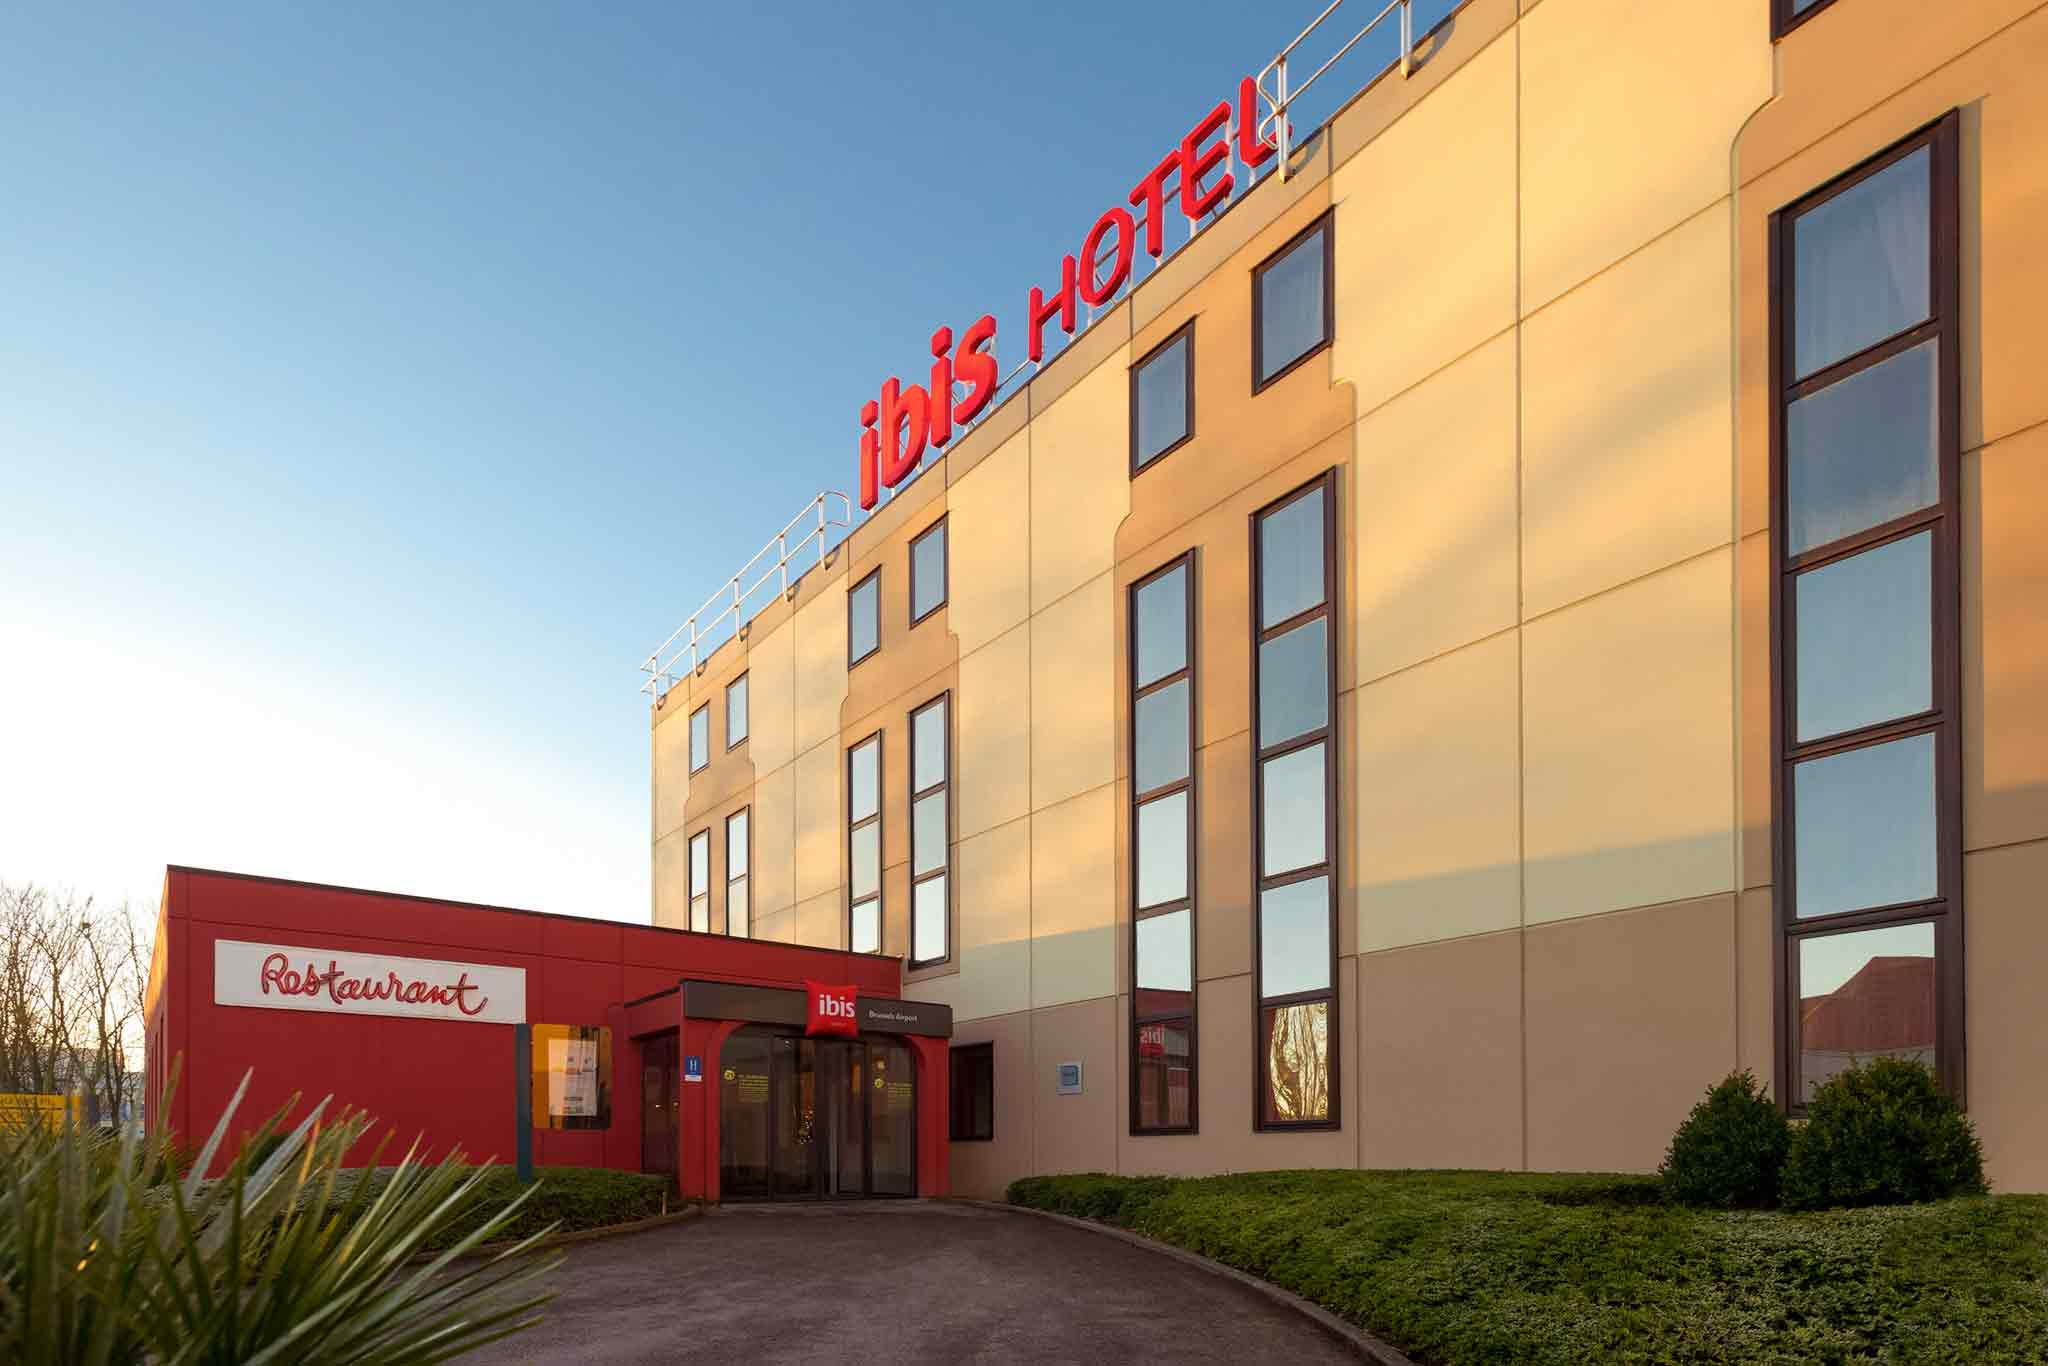 Hotell – ibis Brussels Airport